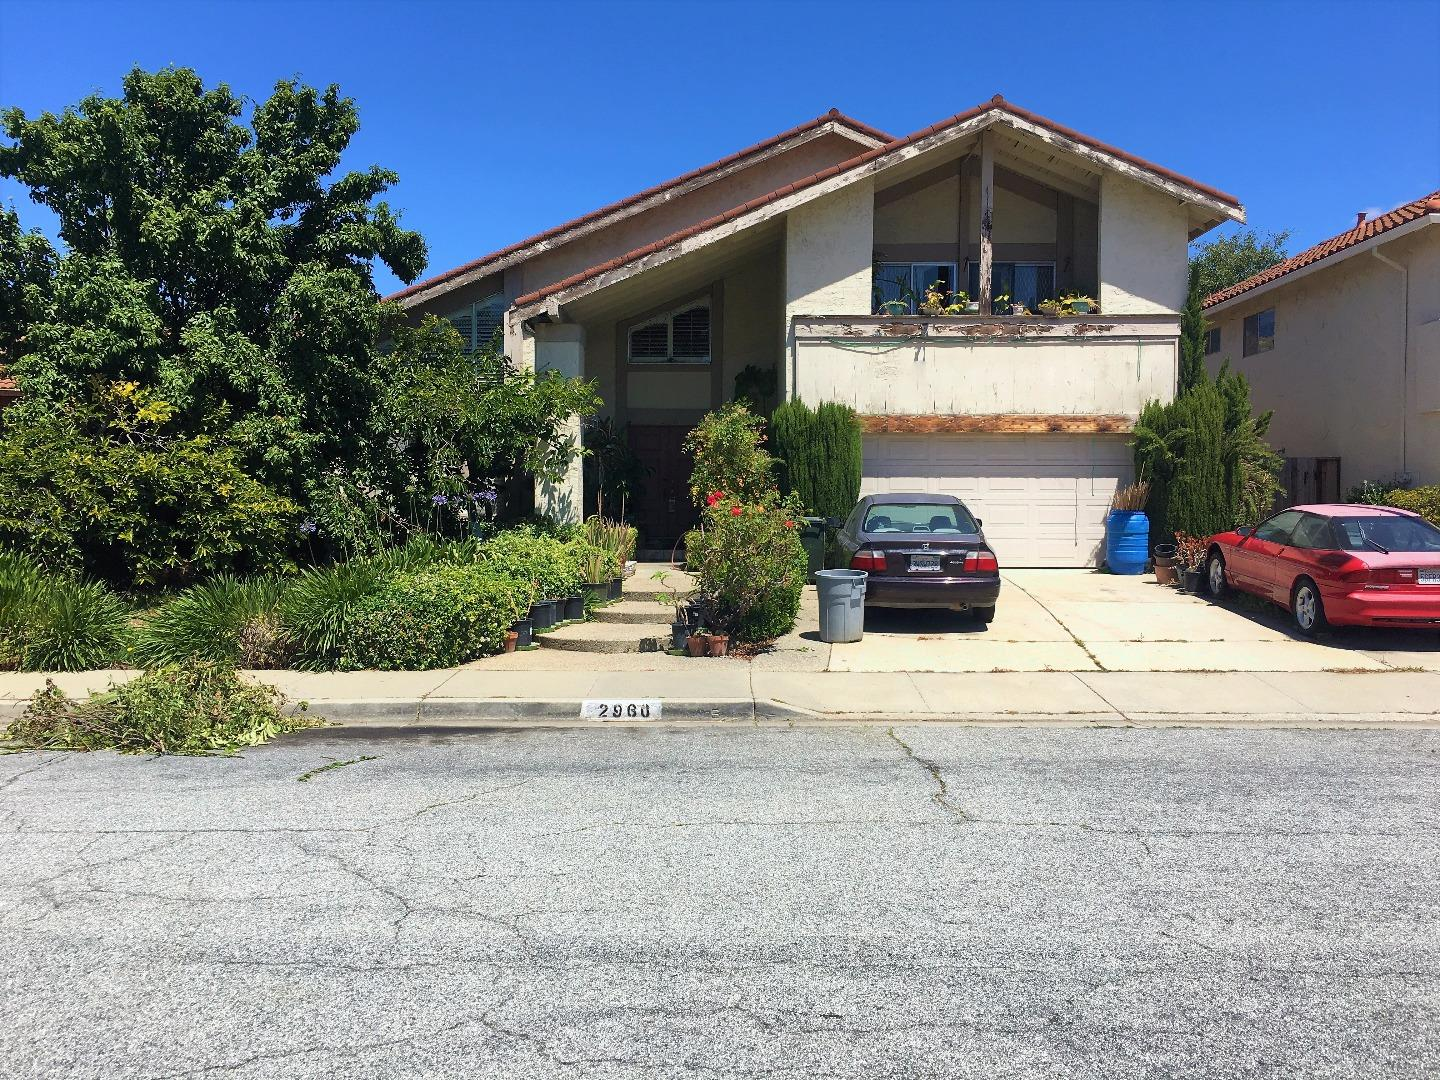 Single Family Home for Sale at 2960 Davidwood Way San Jose, California 95148 United States